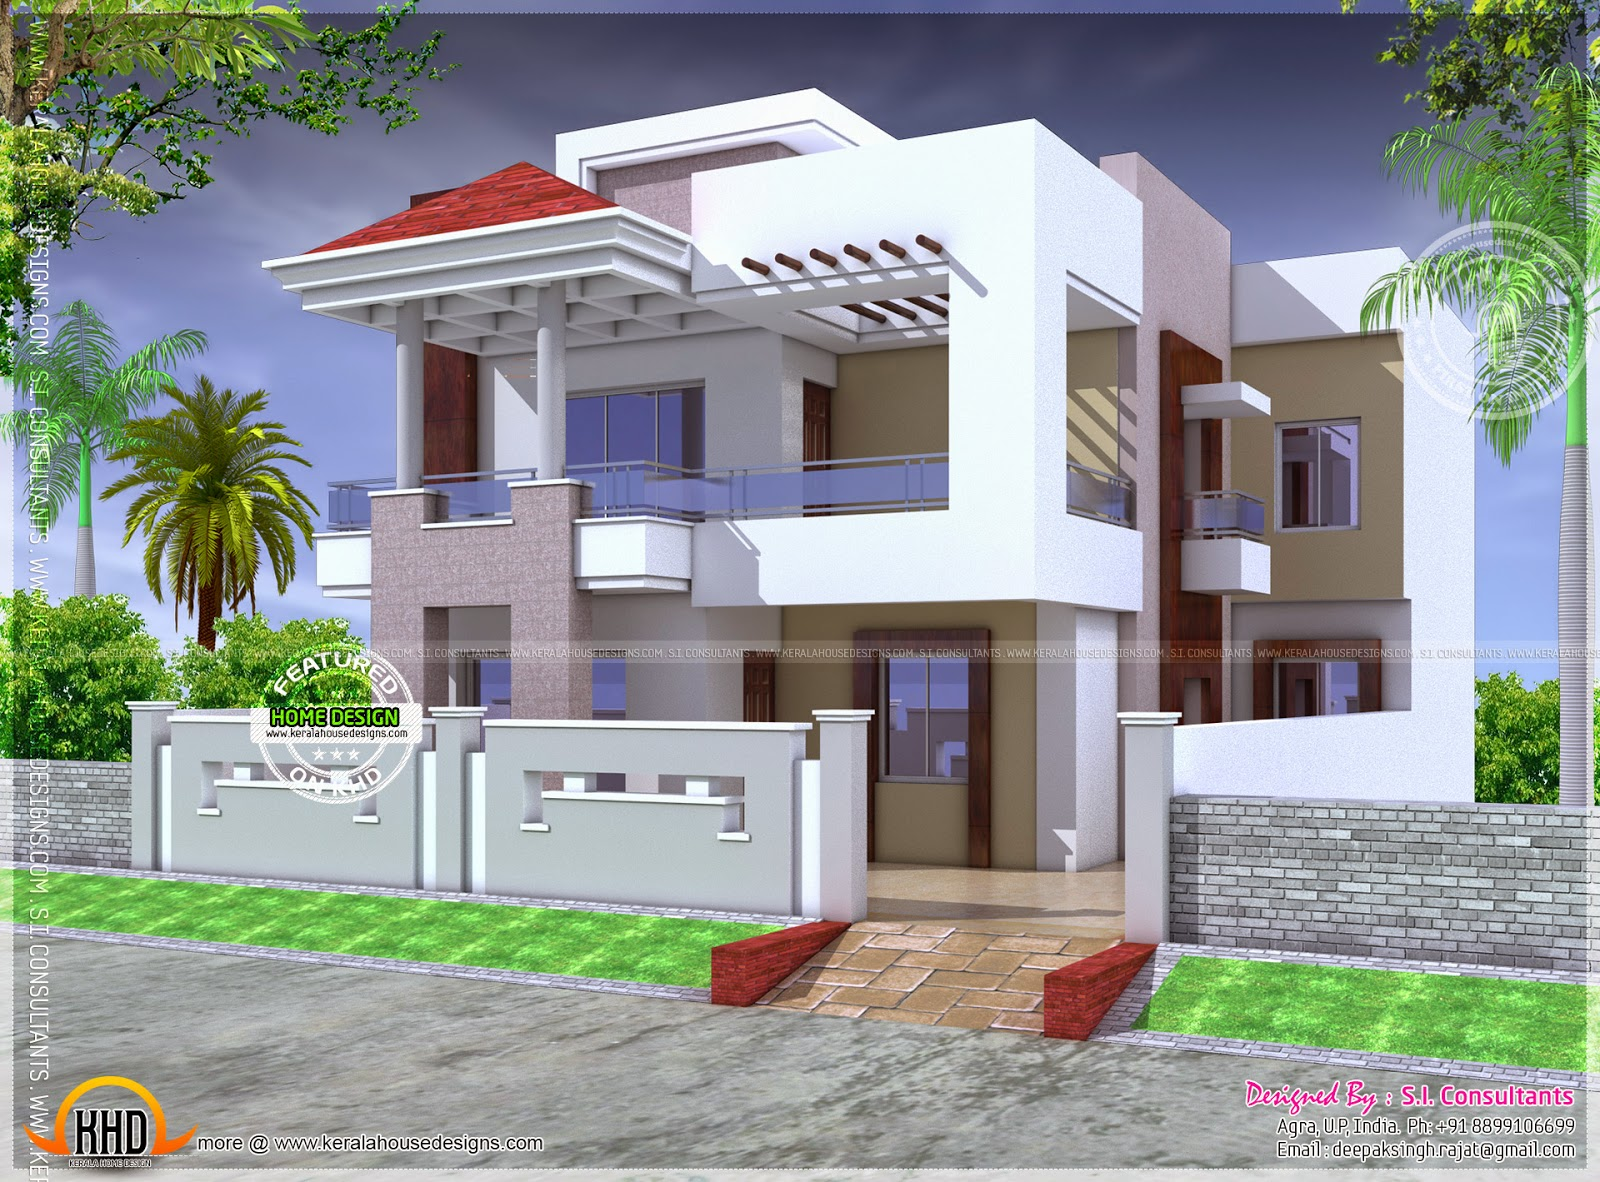 March 2014 kerala home design and floor plans for House architecture styles in india